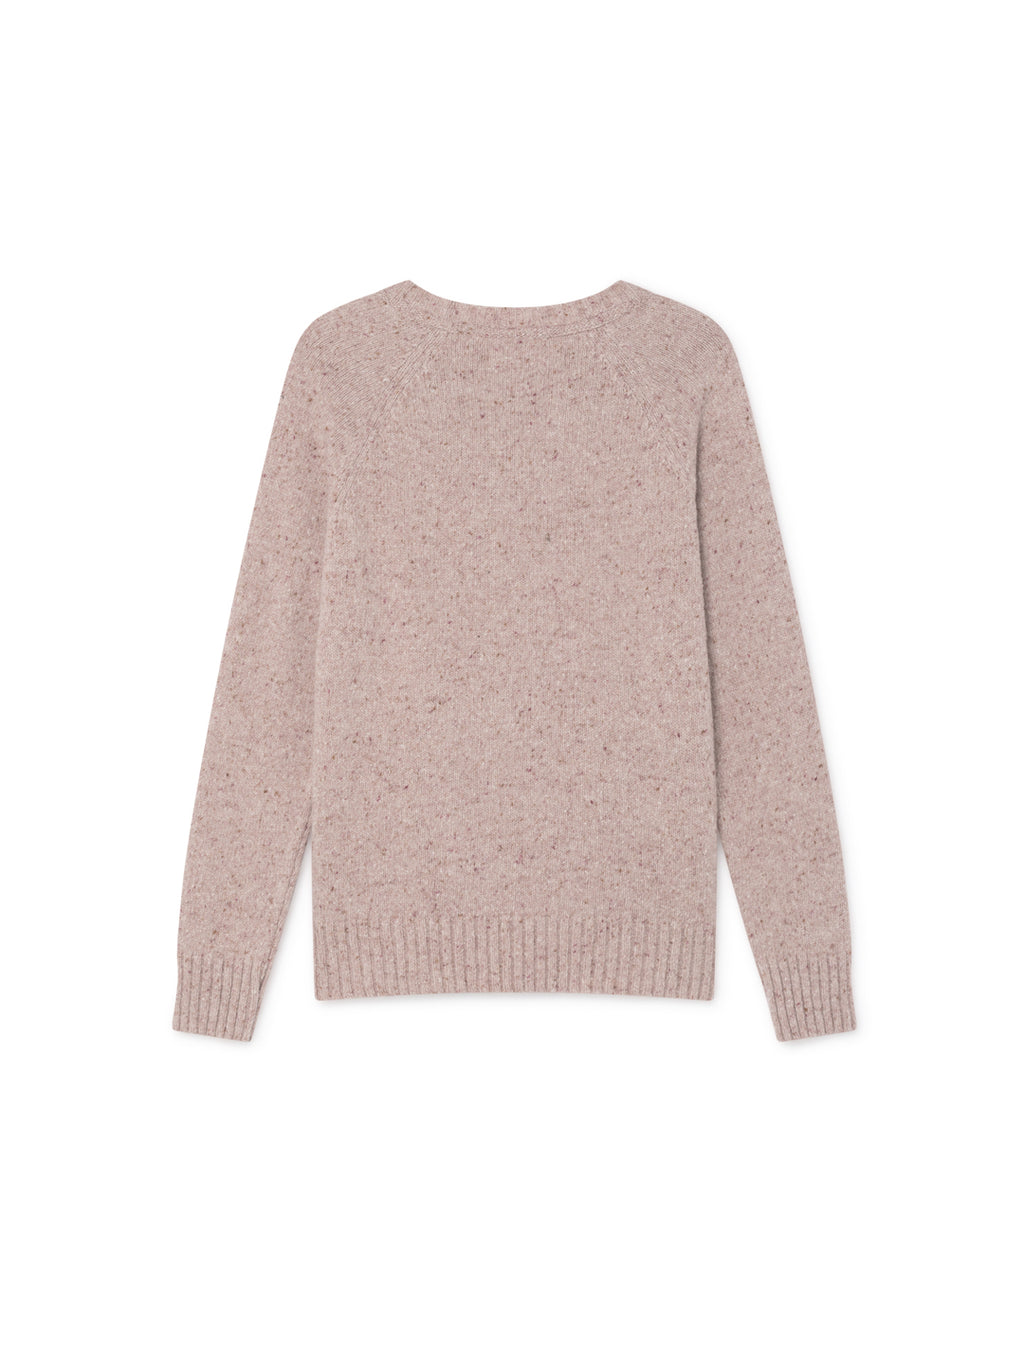 TWOTHIRDS Womens Knit: Agpat - Dusty Pink back